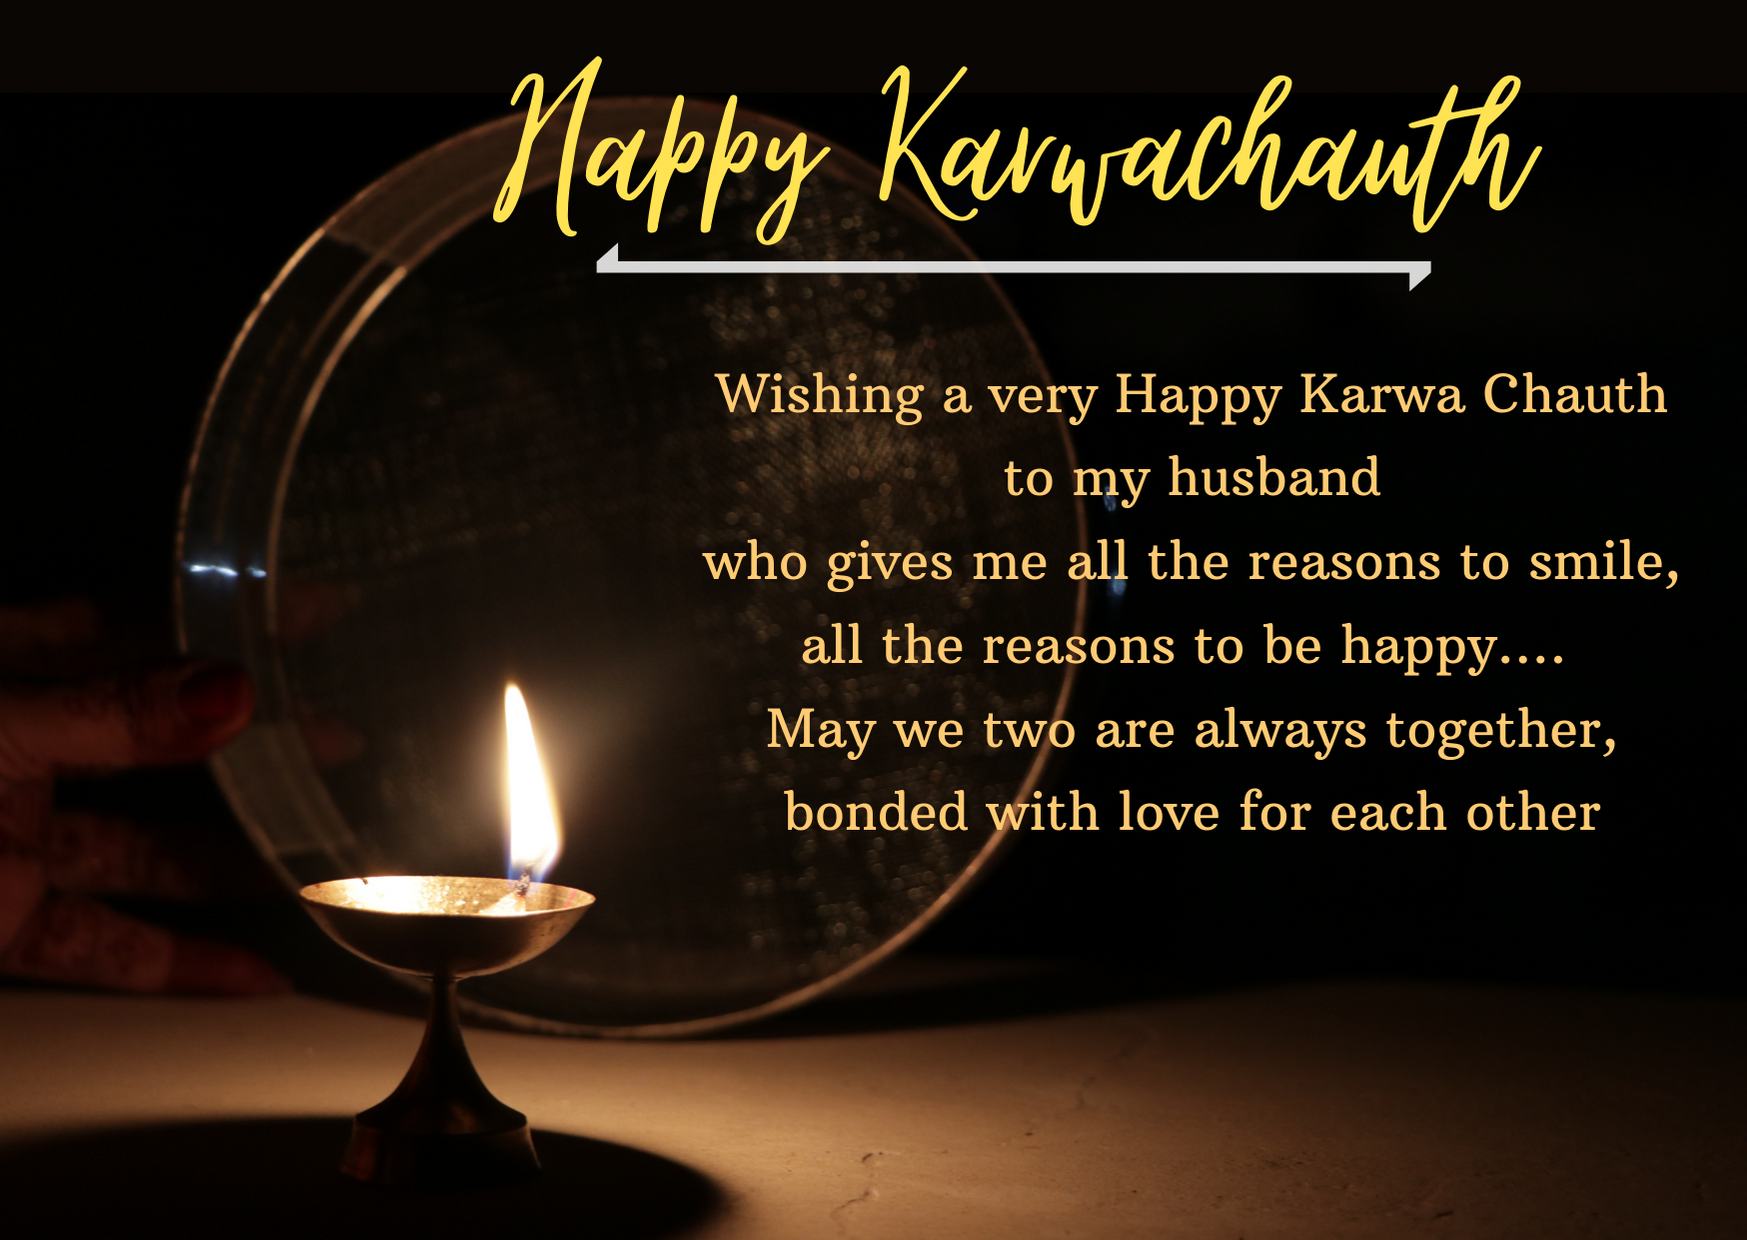 karwa chauth status for husband in english